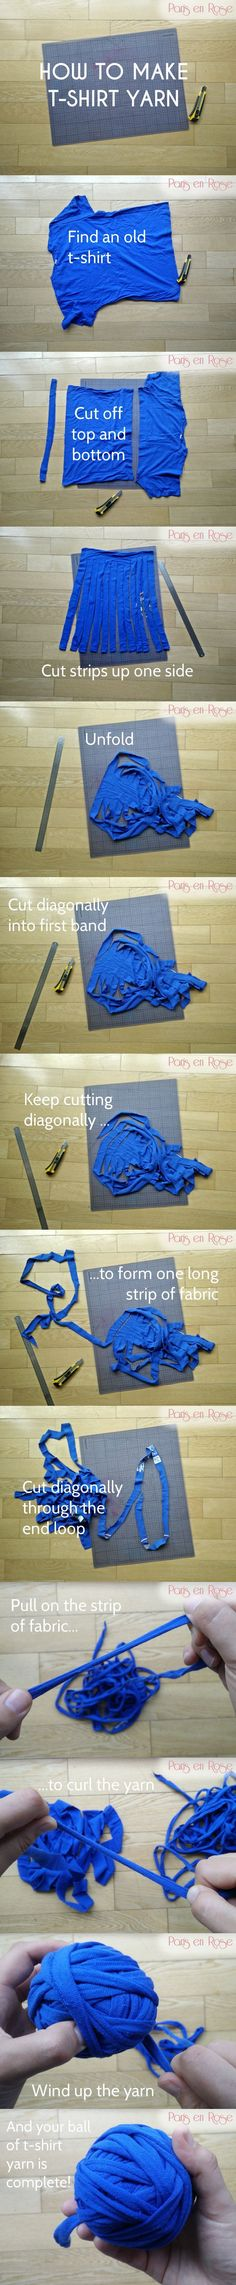 diy_crafts- How to make t-shirt yarn : recycle old t-shirst into something new by cutting them up to make yarn Crochet Crafts, Yarn Crafts, Fabric Crafts, Sewing Crafts, Yarn Projects, Knitting Projects, Crochet Projects, Sewing Projects, Sewing Tips